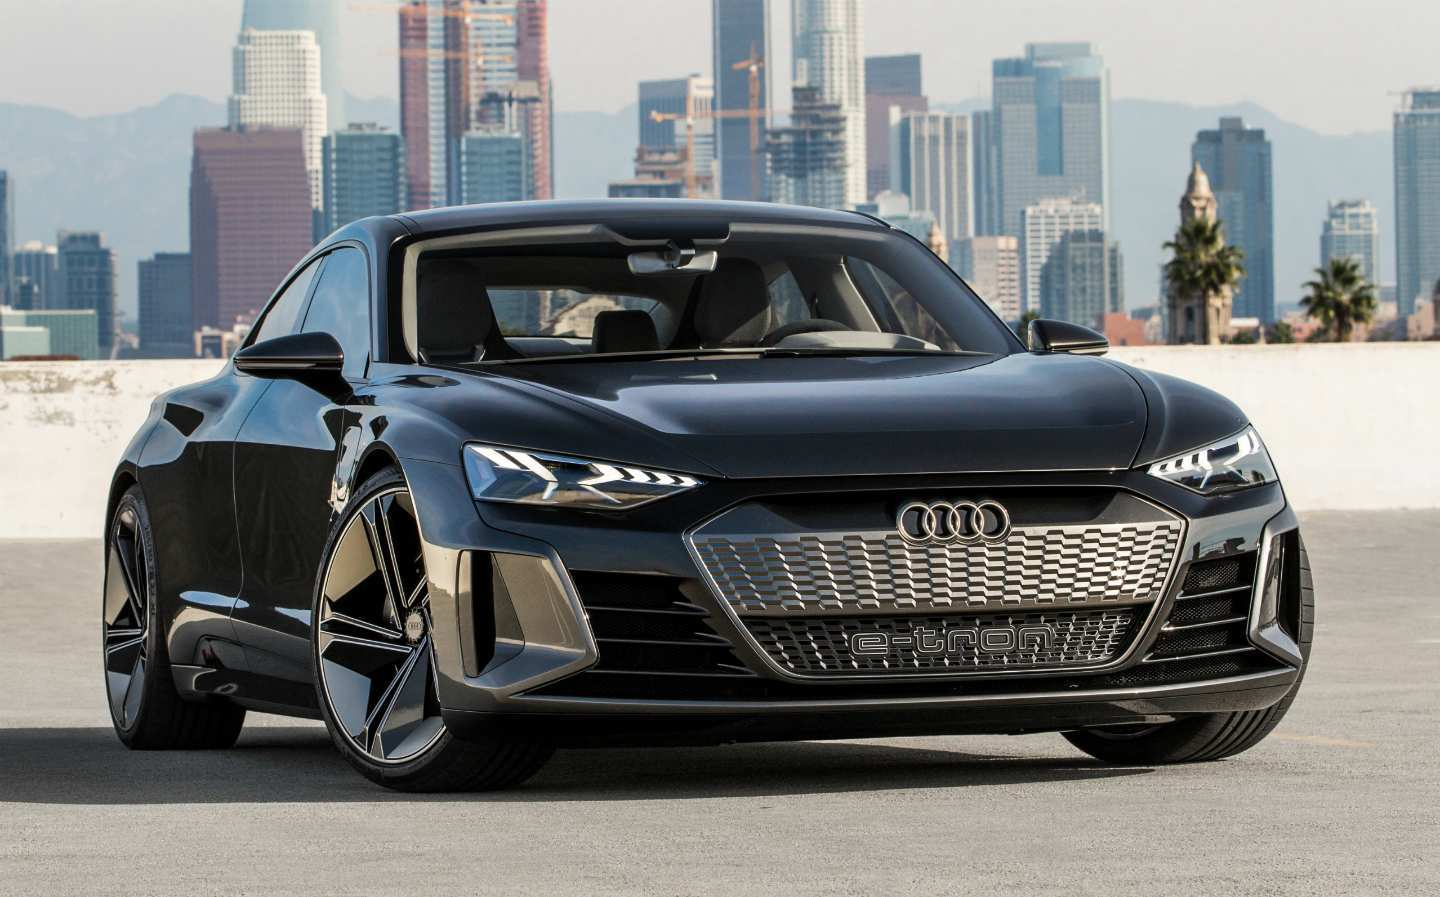 58 Gallery of Audi G Tron 2020 Performance by Audi G Tron 2020